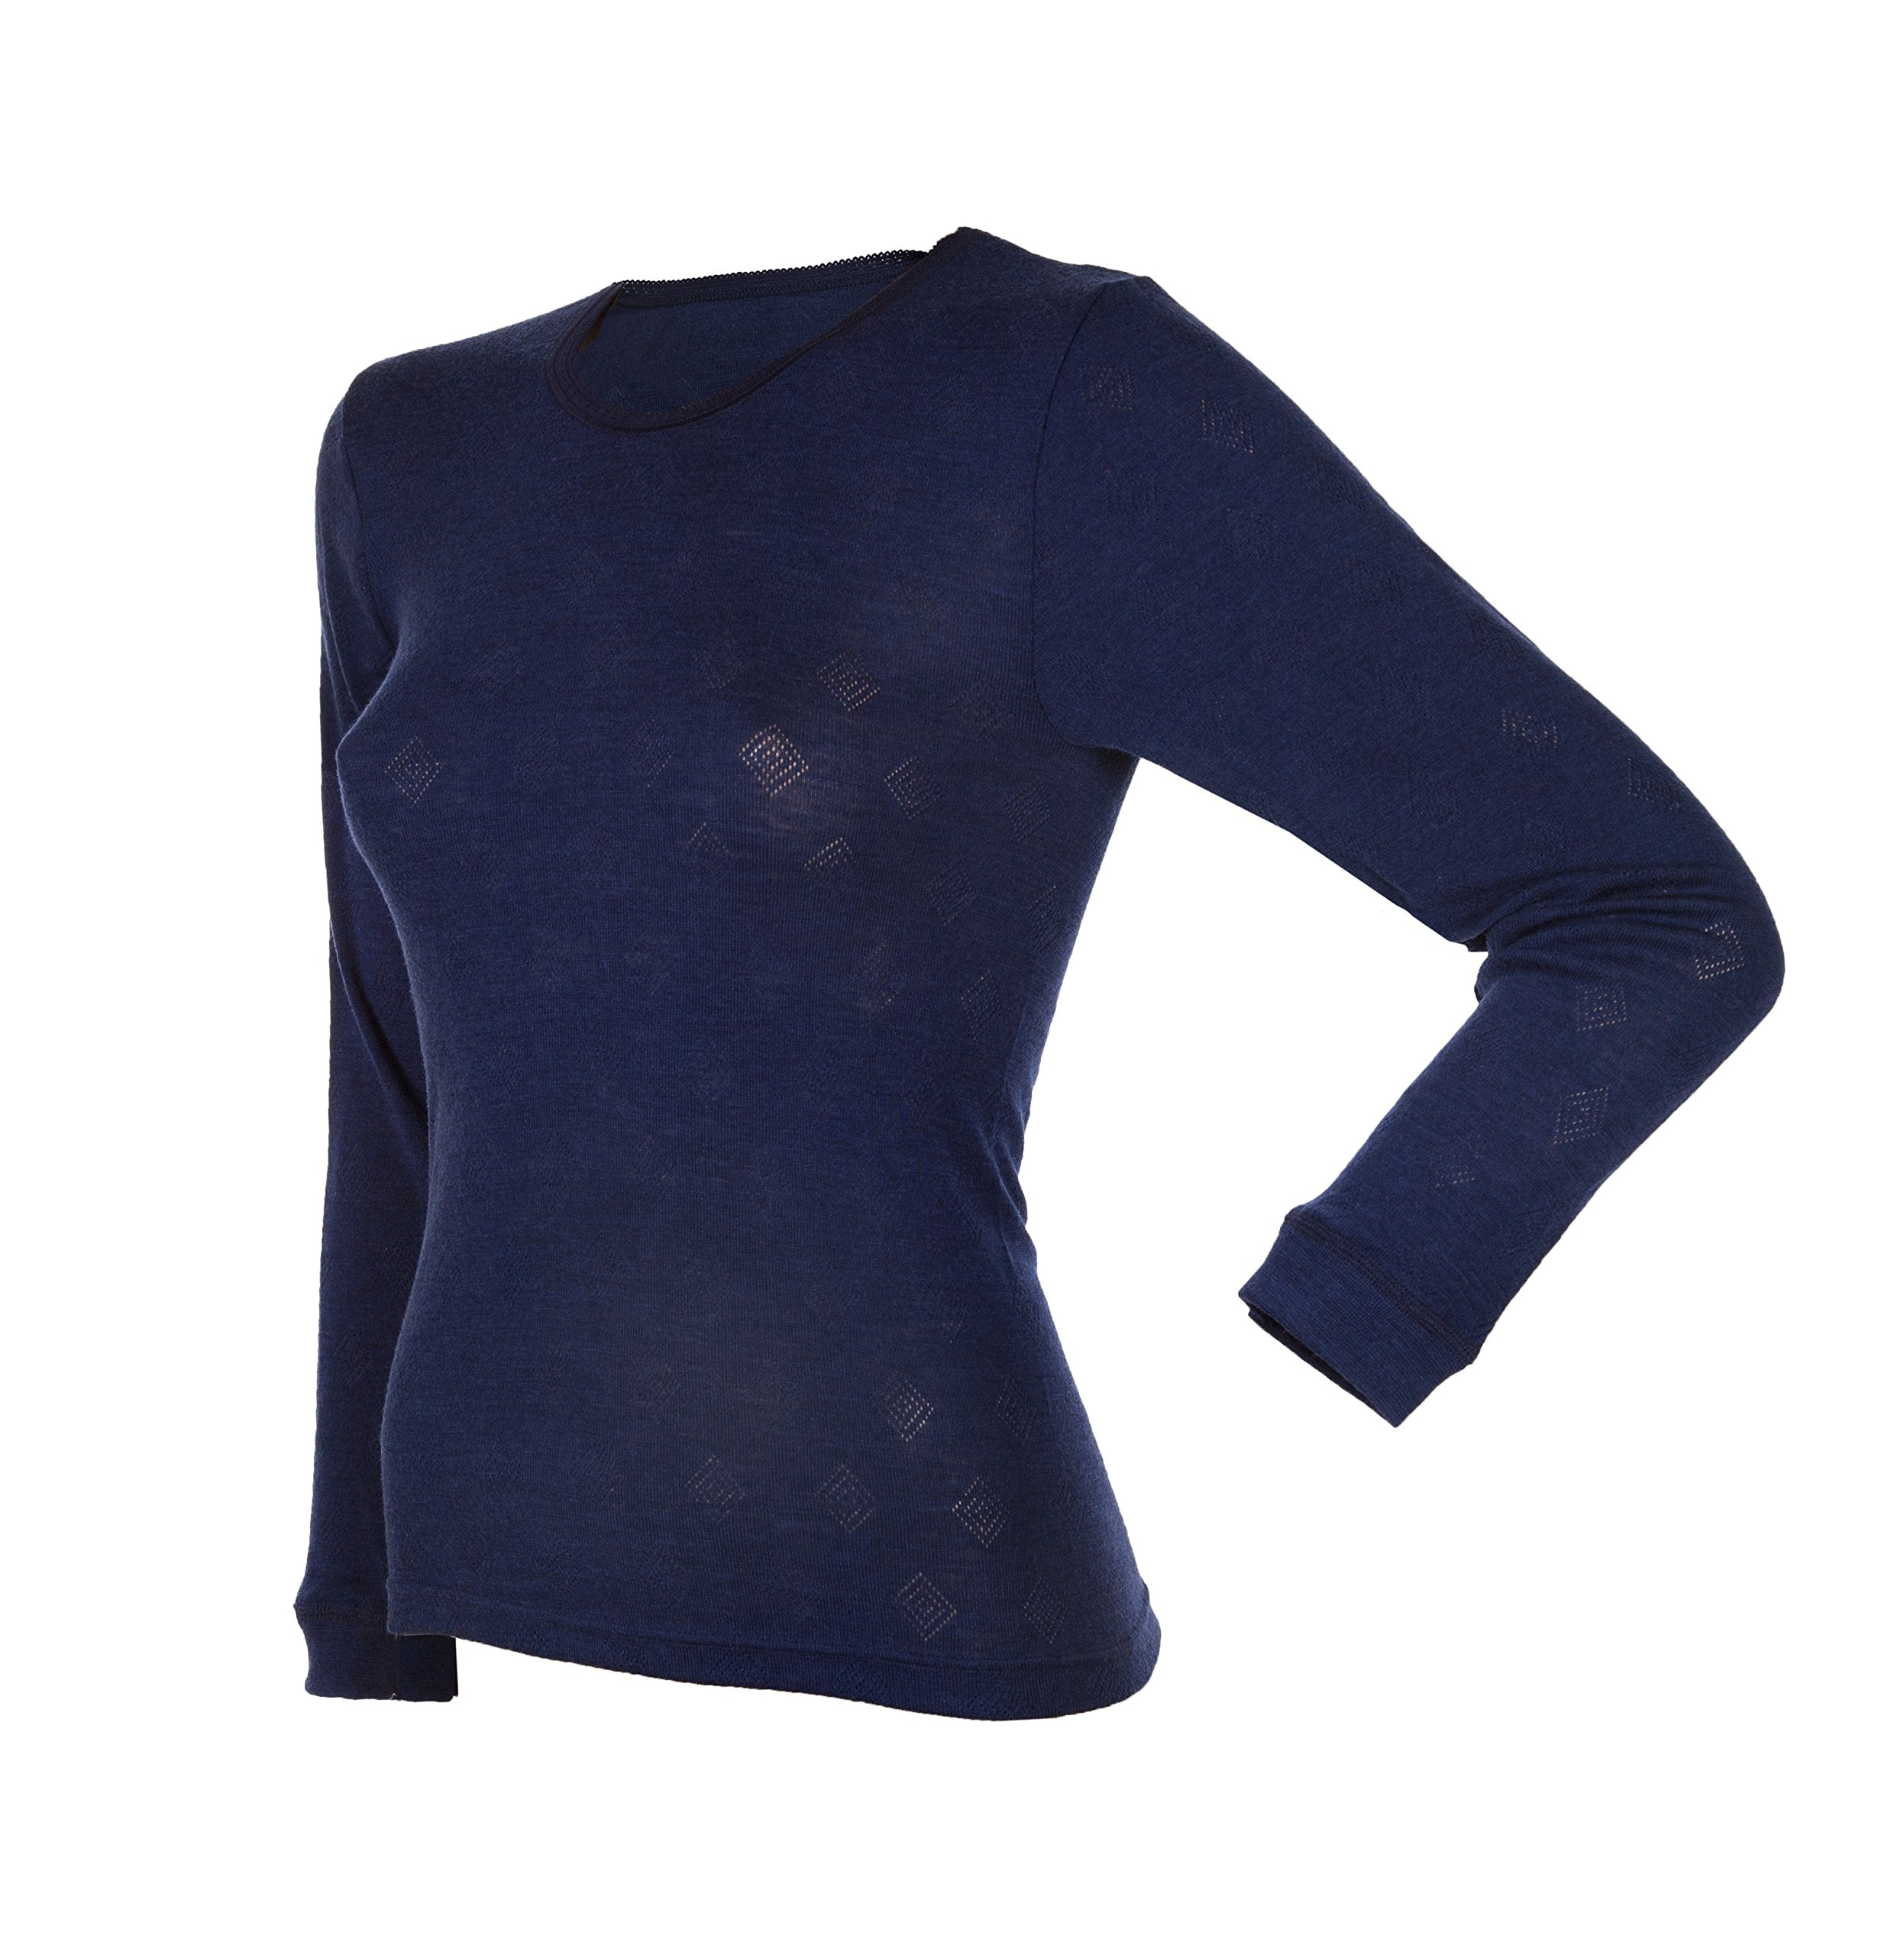 Janus 80% Merino Wool Women's Long Sleeve T-Shirt Made in Norway.